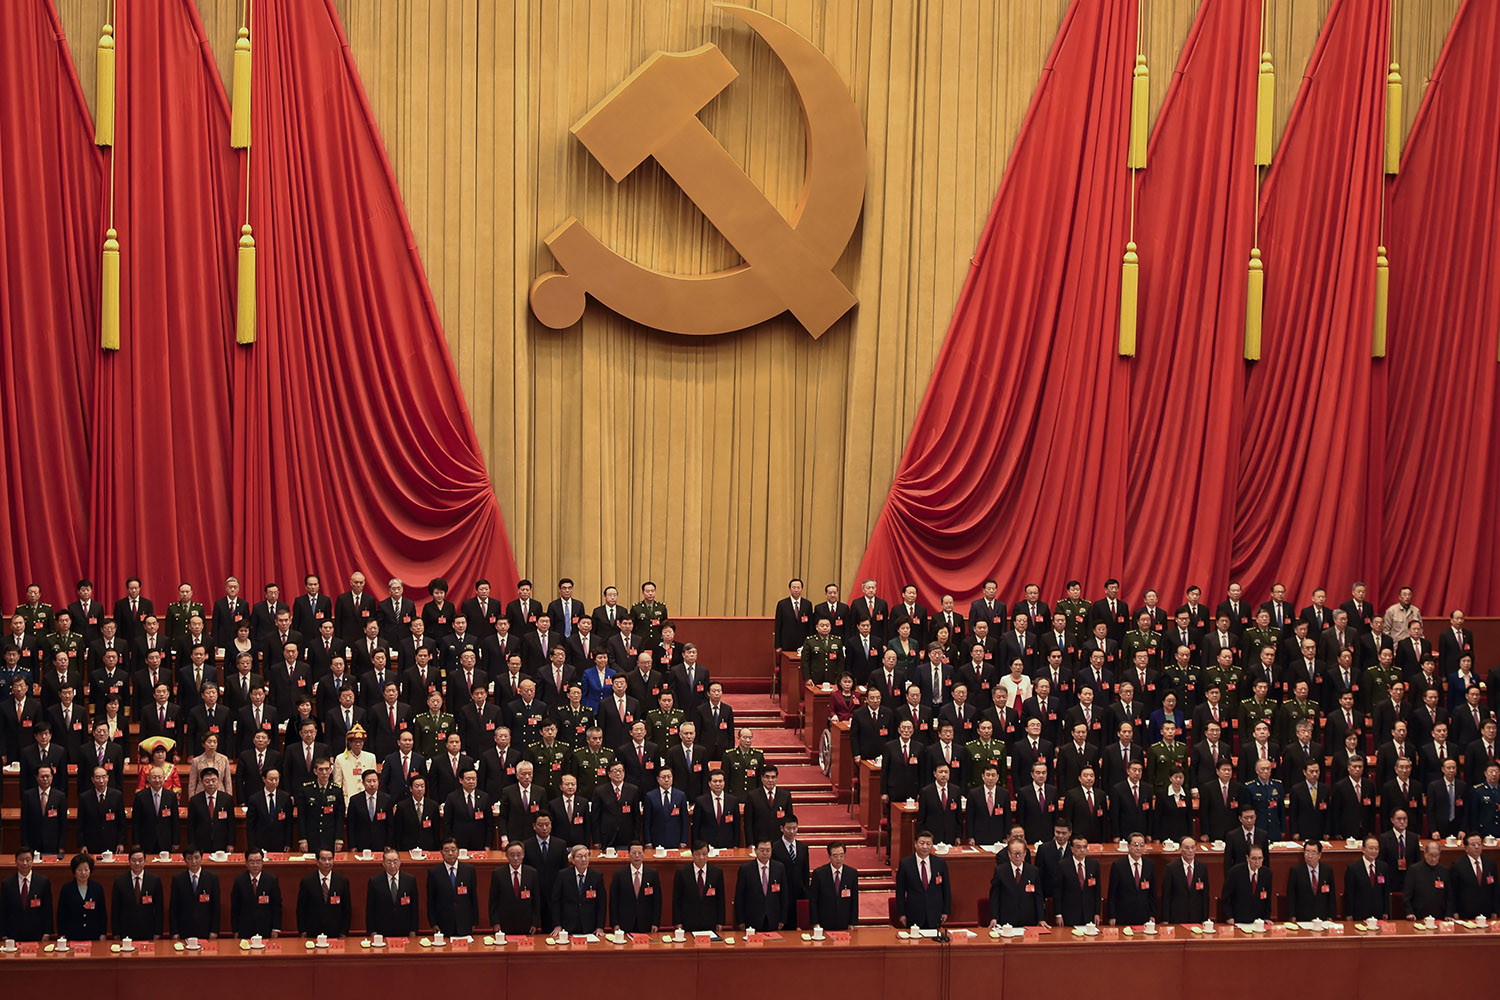 TOPSHOT - Delegates listen to the Internationale at the end of the closing session of the 19th Communist Party Congress at the Great Hall of the People in Beijing on October 24, 2017. Chinese President Xi Jinping's name was added to the Communist Party's constitution at a defining congress, elevating him alongside Chairman Mao to the pantheon of the country's founding giants.  / AFP PHOTO / WANG ZHAO        (Photo credit should read WANG ZHAO/AFP/Getty Images)